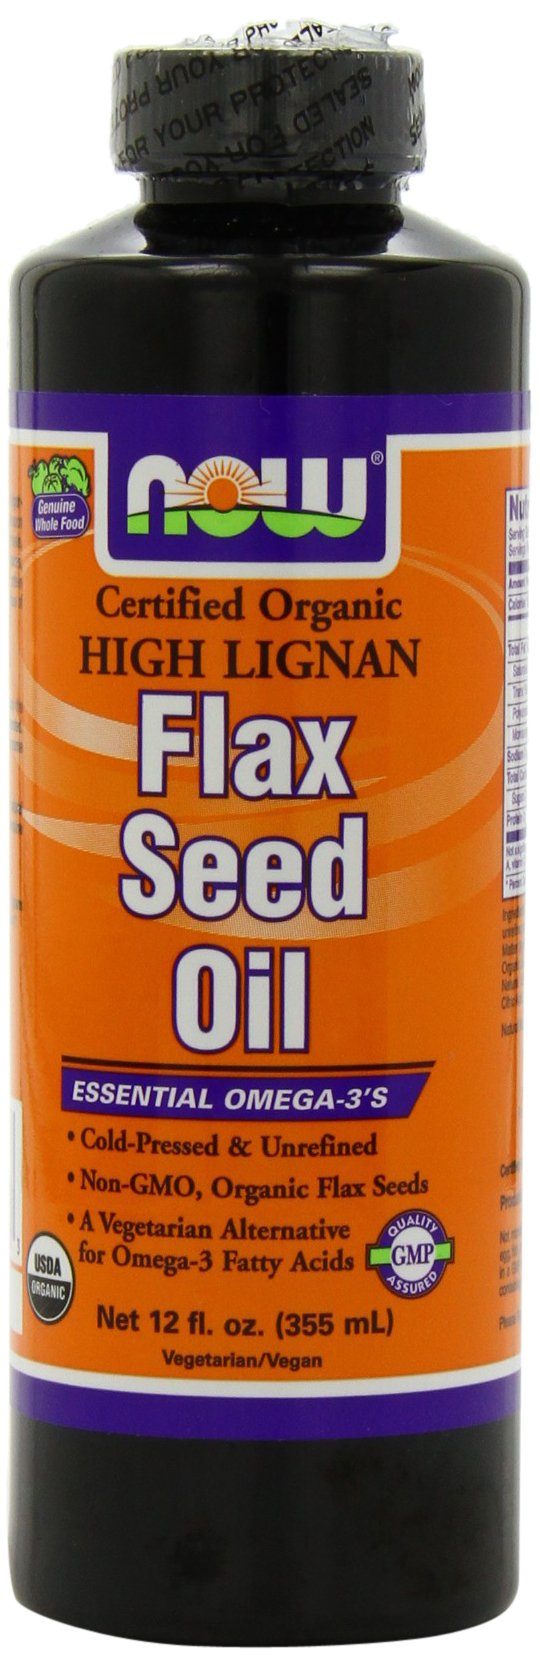 Now High Lignan Flax Seed Oil, 12 Ounces (Pack of 2)